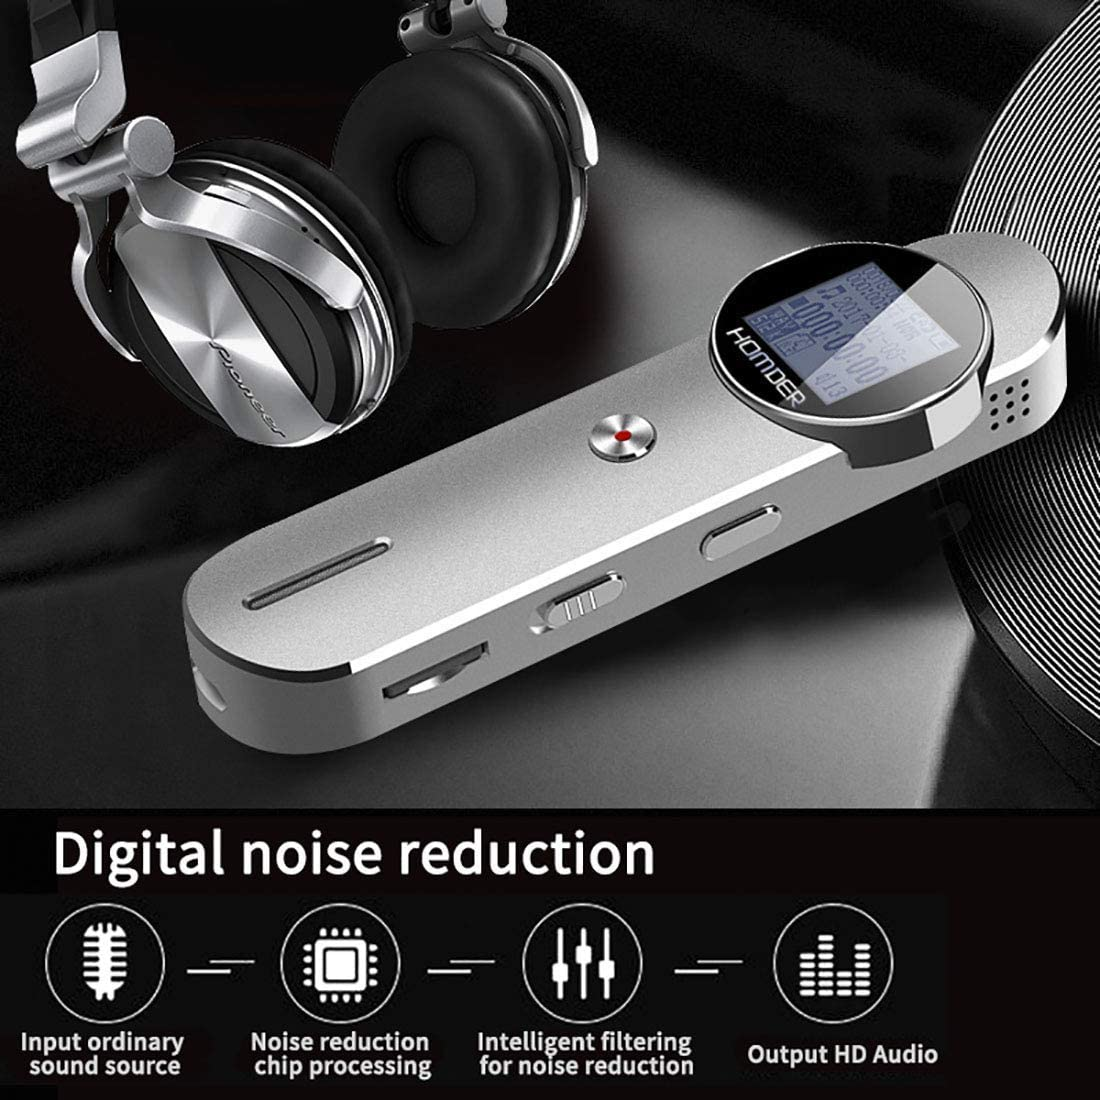 Homder 1536kbps 8GB Voice Activated Recorder for Lectures//Meetings//Class Supports 72GB TF Card Expansion Digital Voice Recorder Silver Stereo HD-Audio Recording Device with Dual Microphone